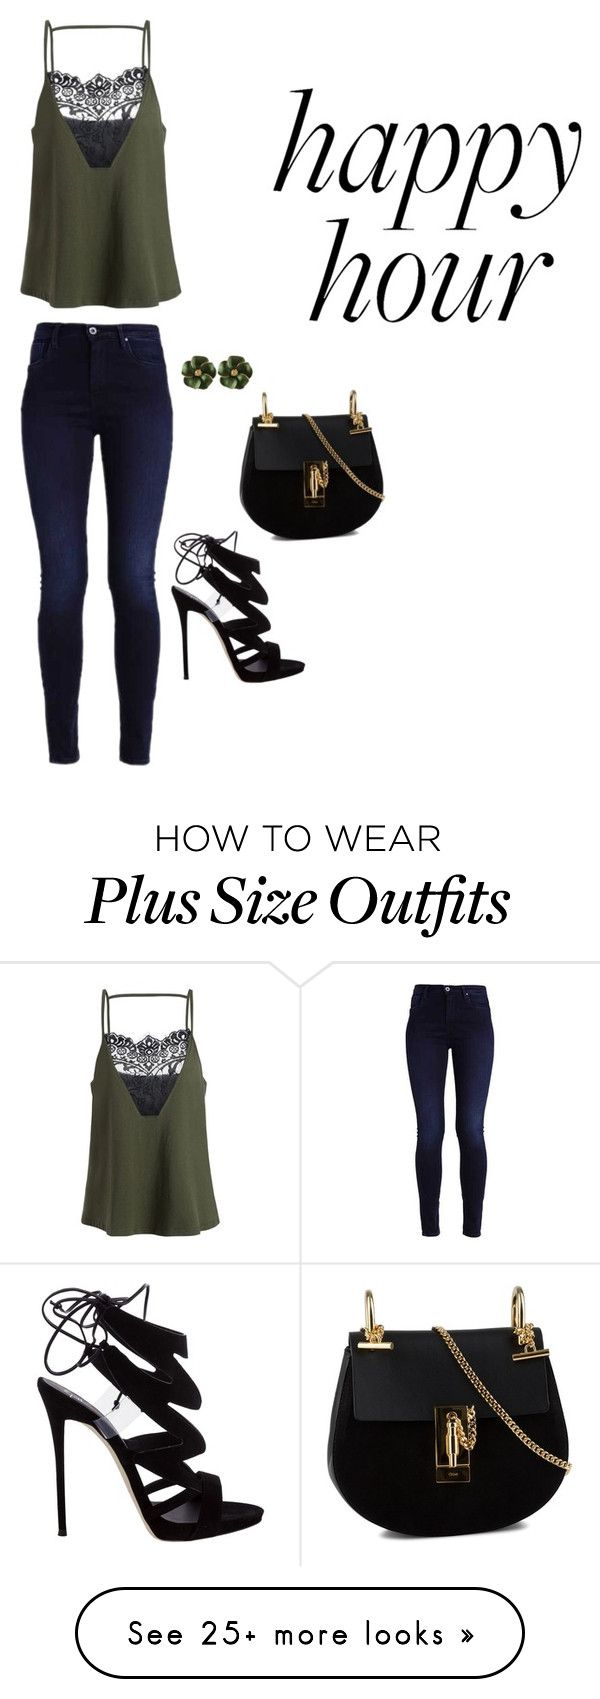 """Happy Hour"" by jaquepkovalski on Polyvore featuring Giuseppe Zanotti and Chloé"